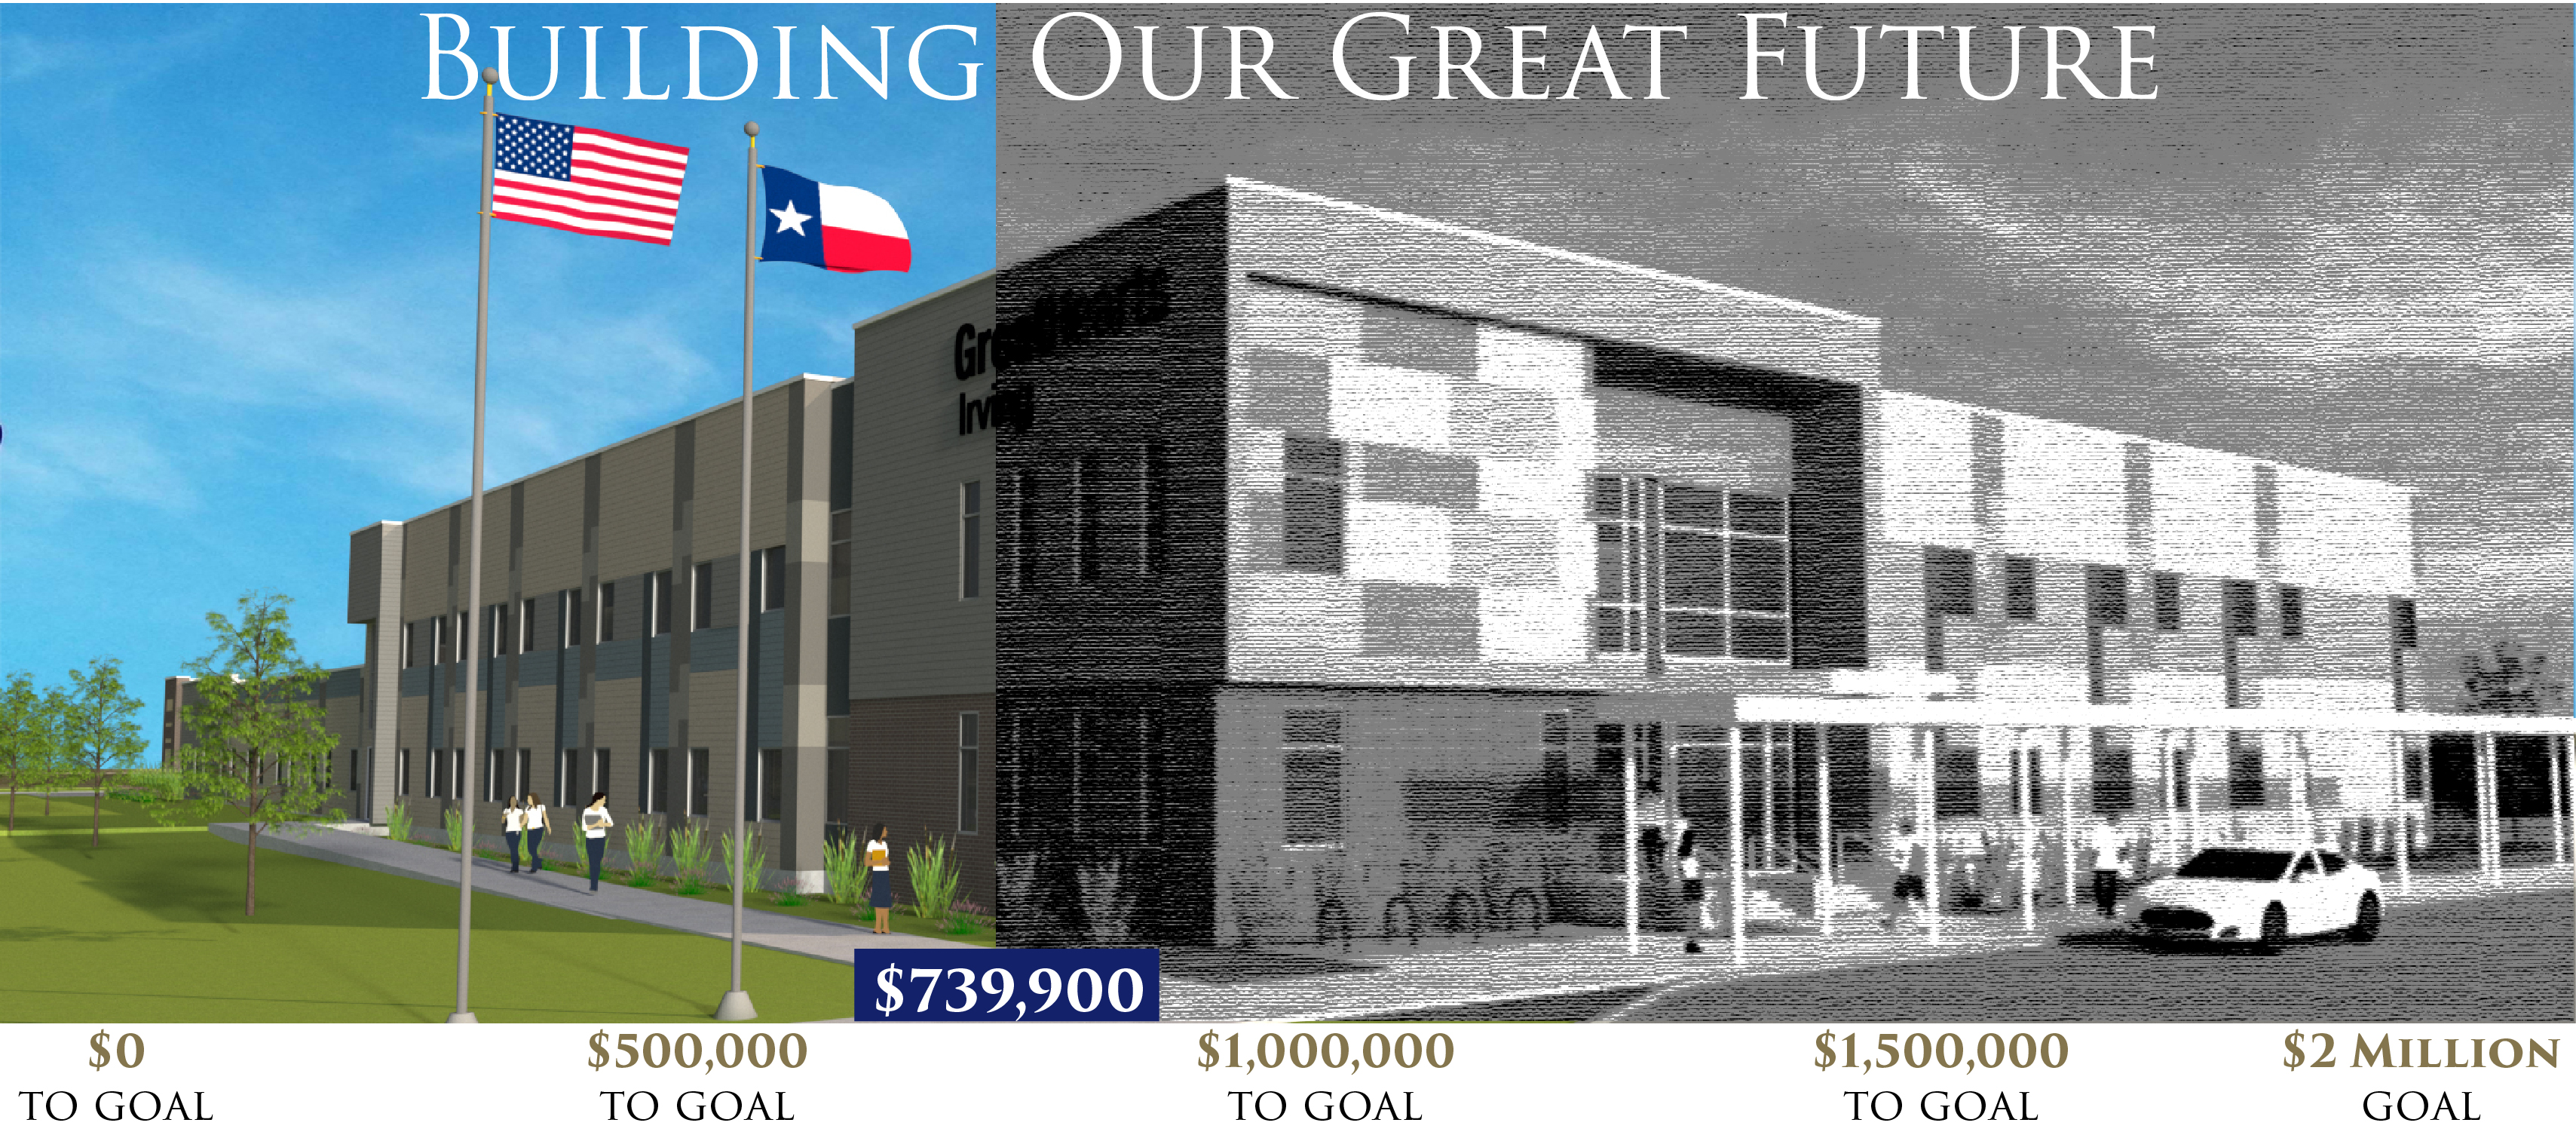 color and black and white rendering - $739,900 raised